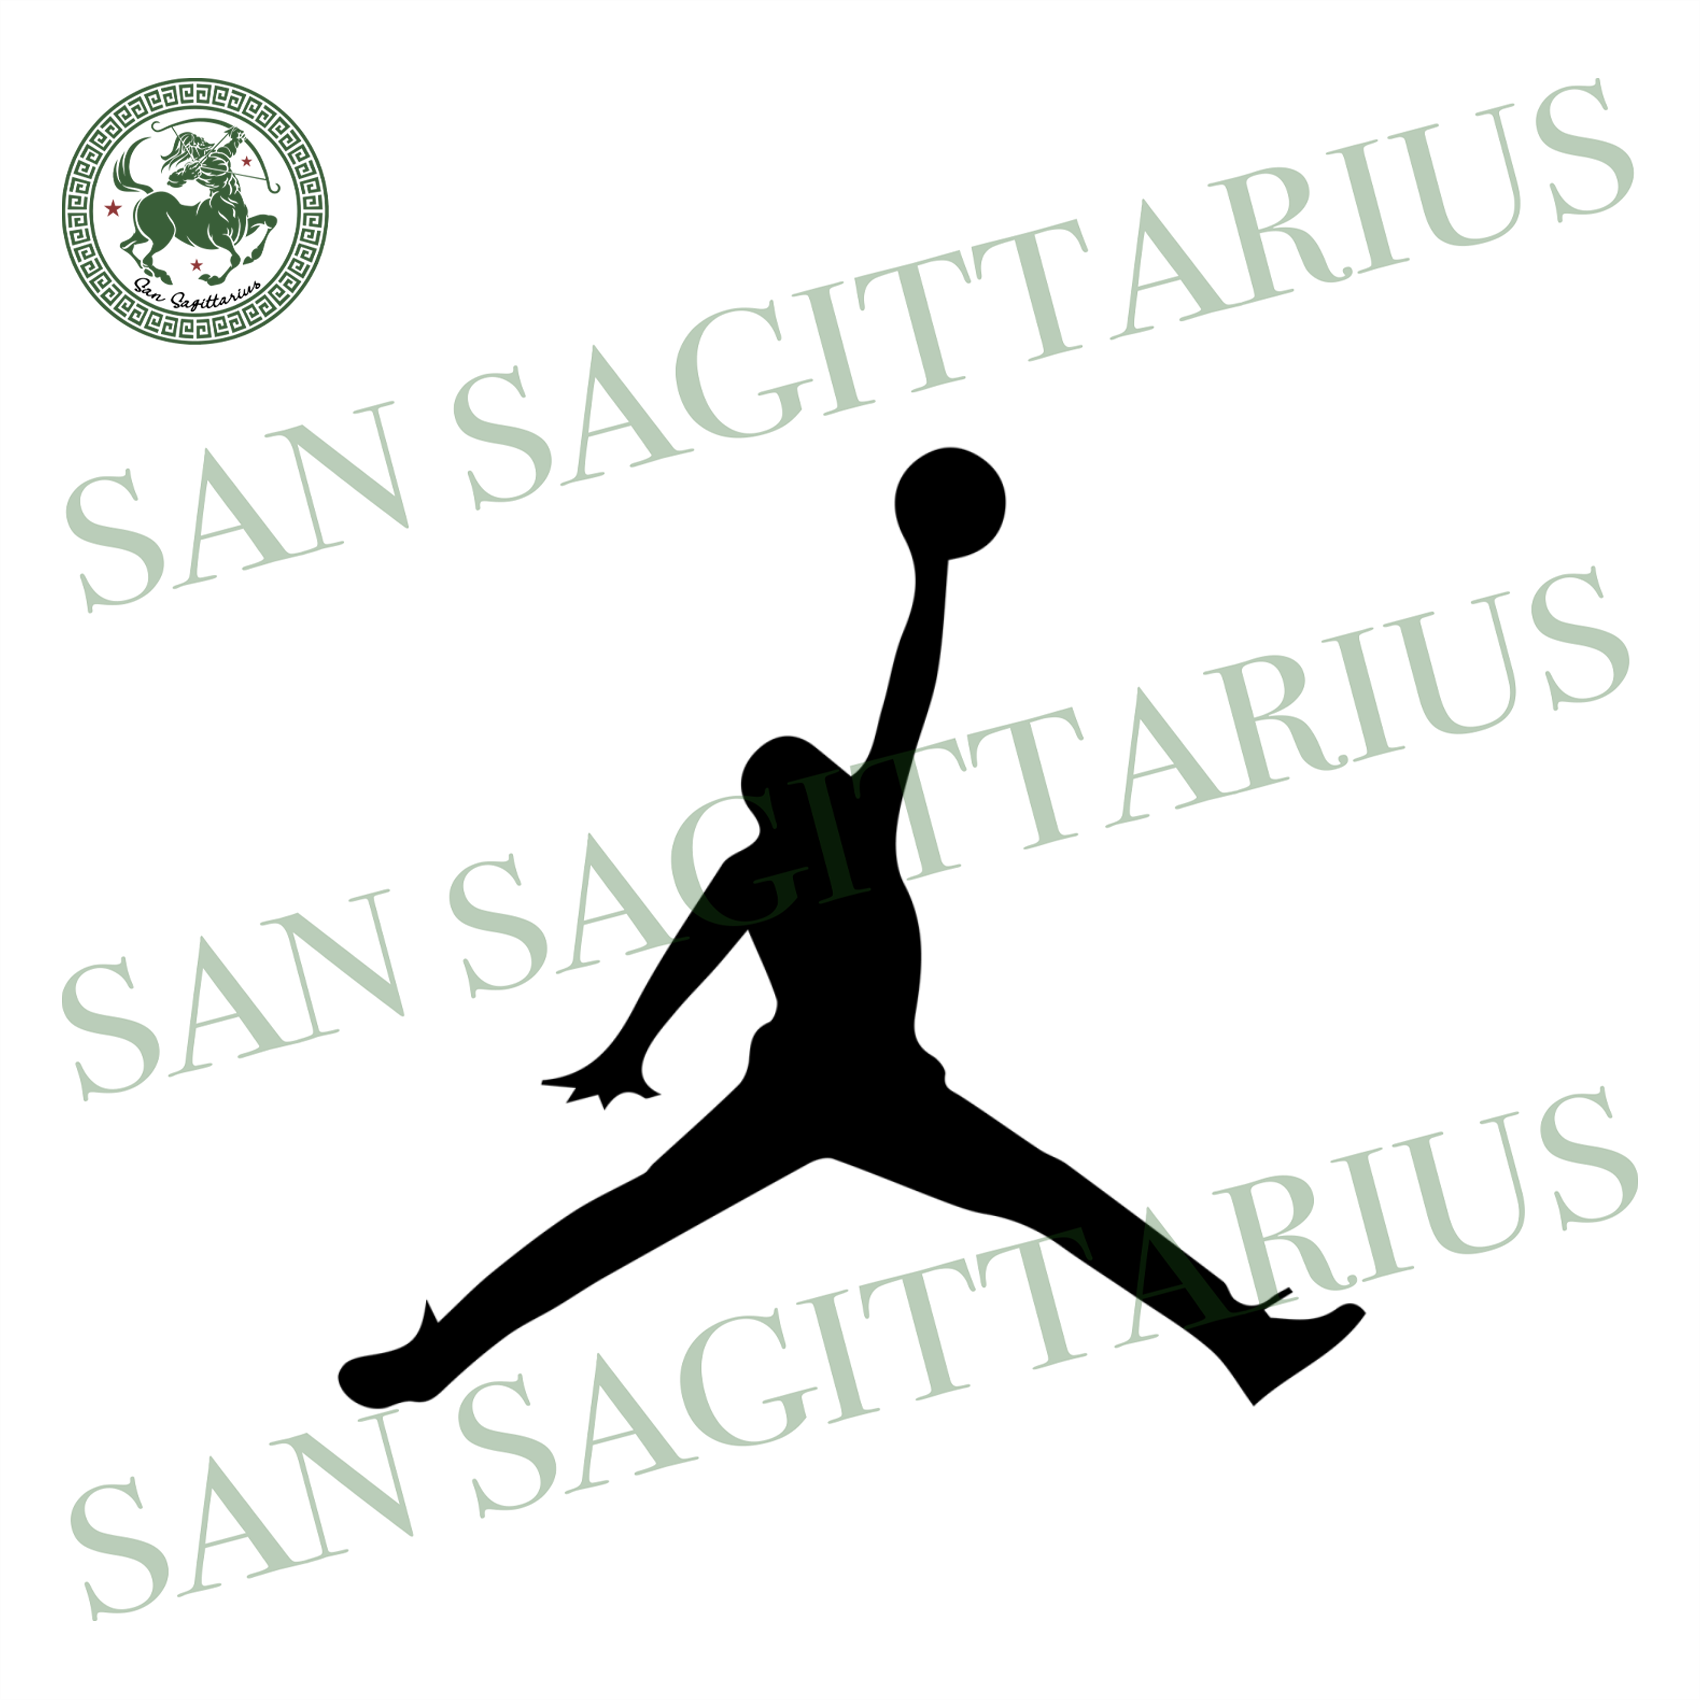 Air Jordan Logo, Trending, Trending Now, Air Jordan Brand Svg, Fashion Brand, Fashion Logo, Fashion Svg, Love Fashion, Logo Svg, Air Jordan Shirts, Air Jordan Cricut, Air Jordan Gift, Air Jor